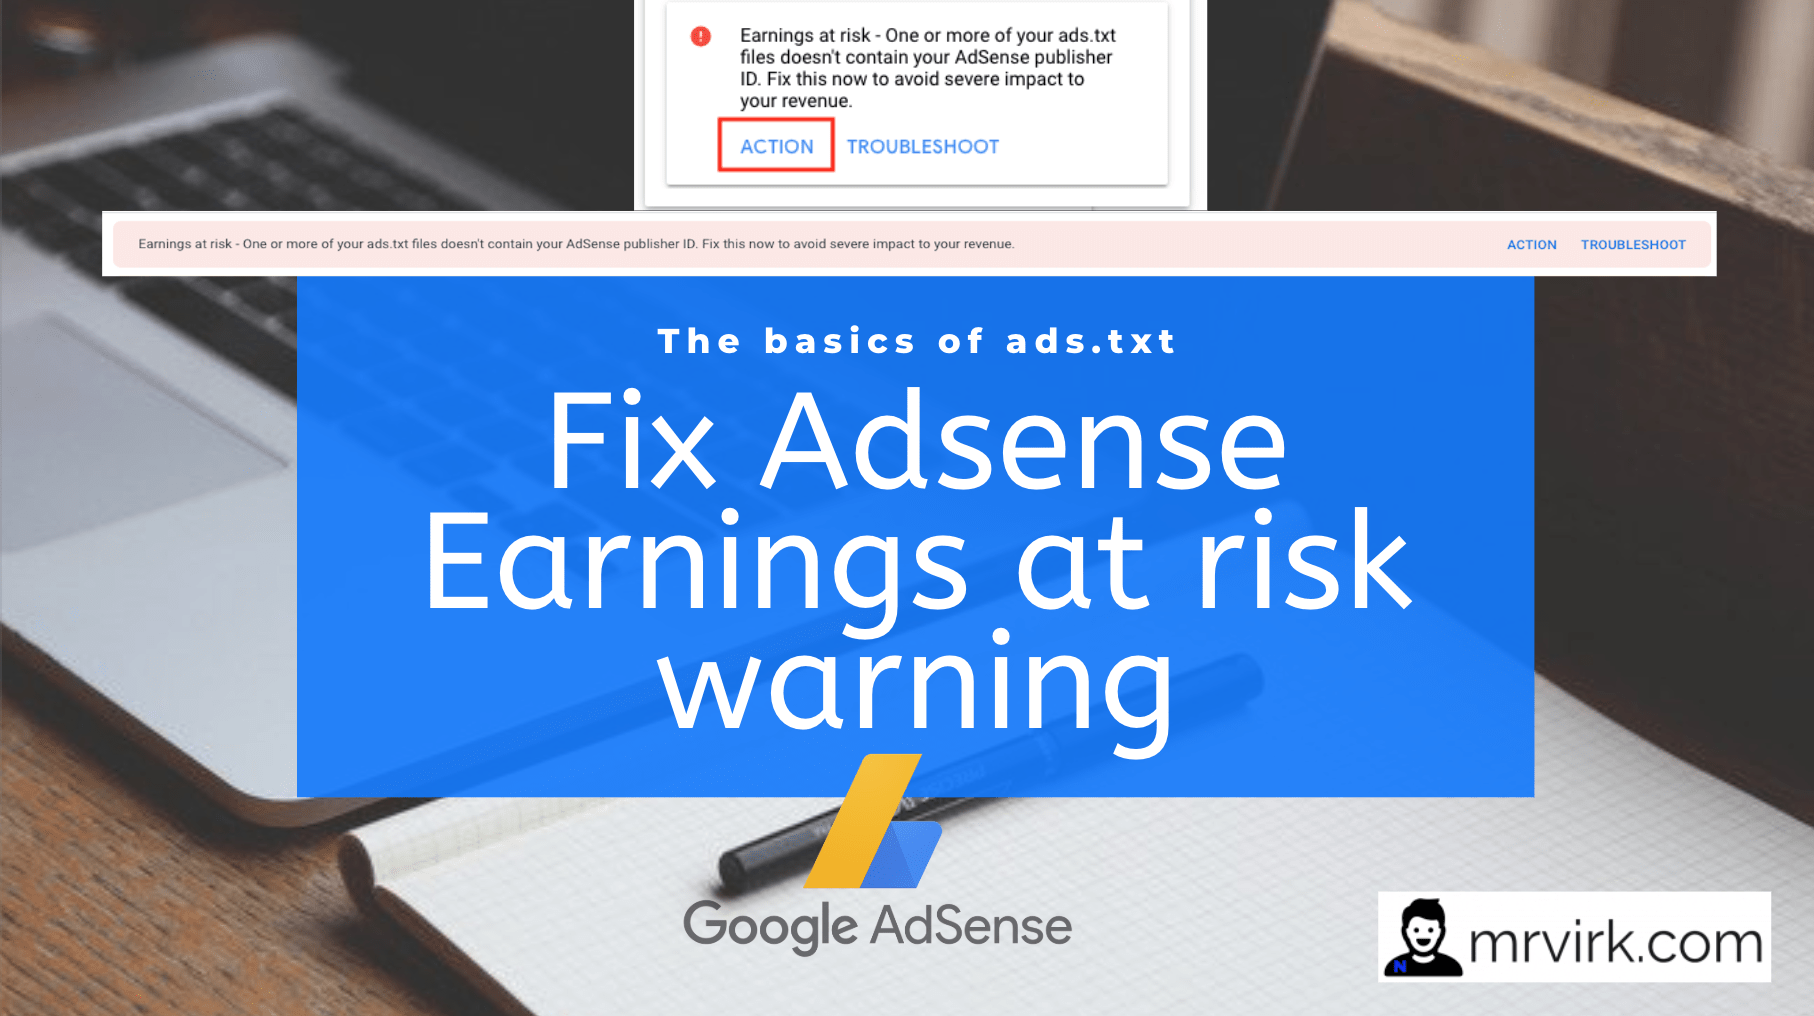 How to Correctly Implement Ads txt and Fix Adsense Earnings